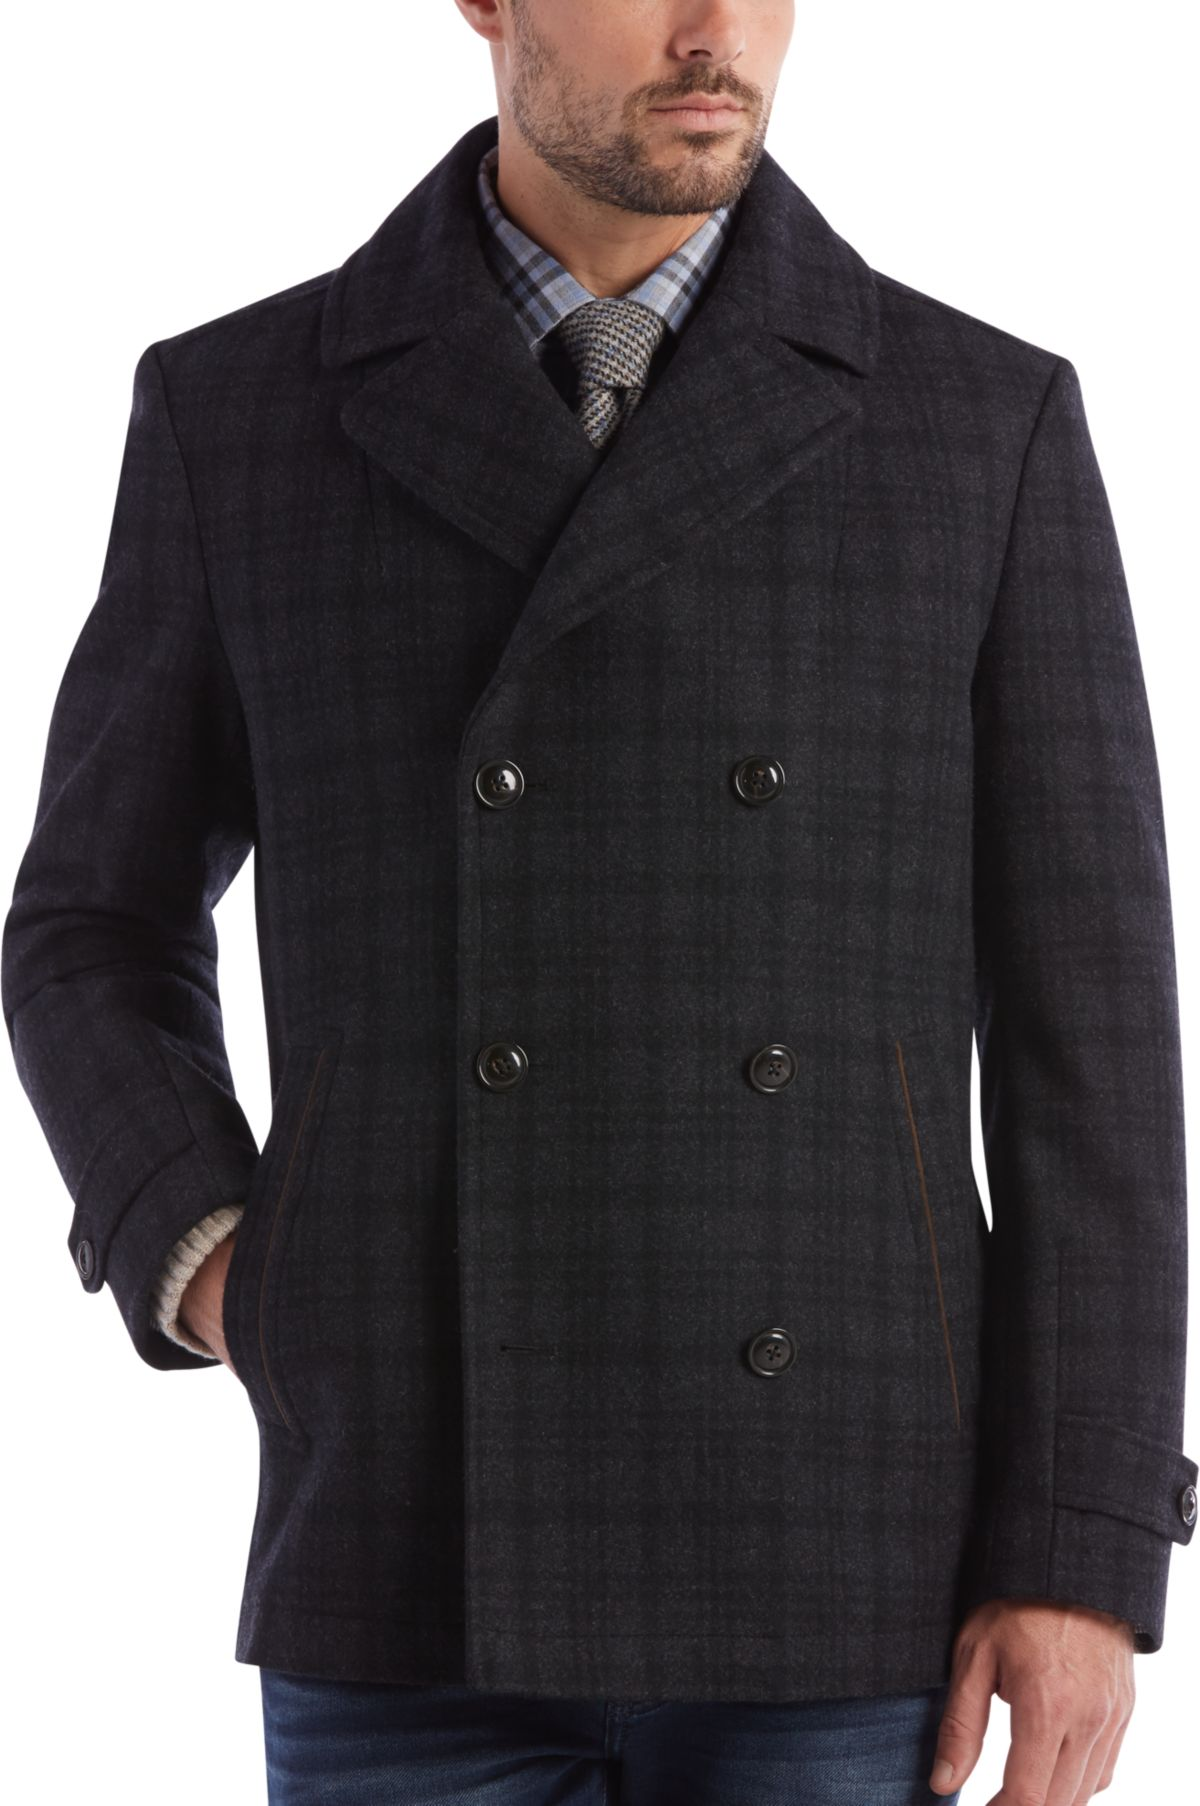 Joseph Abboud Charcoal Plaid Slim Fit Peacoat - Men's Peacoats ...